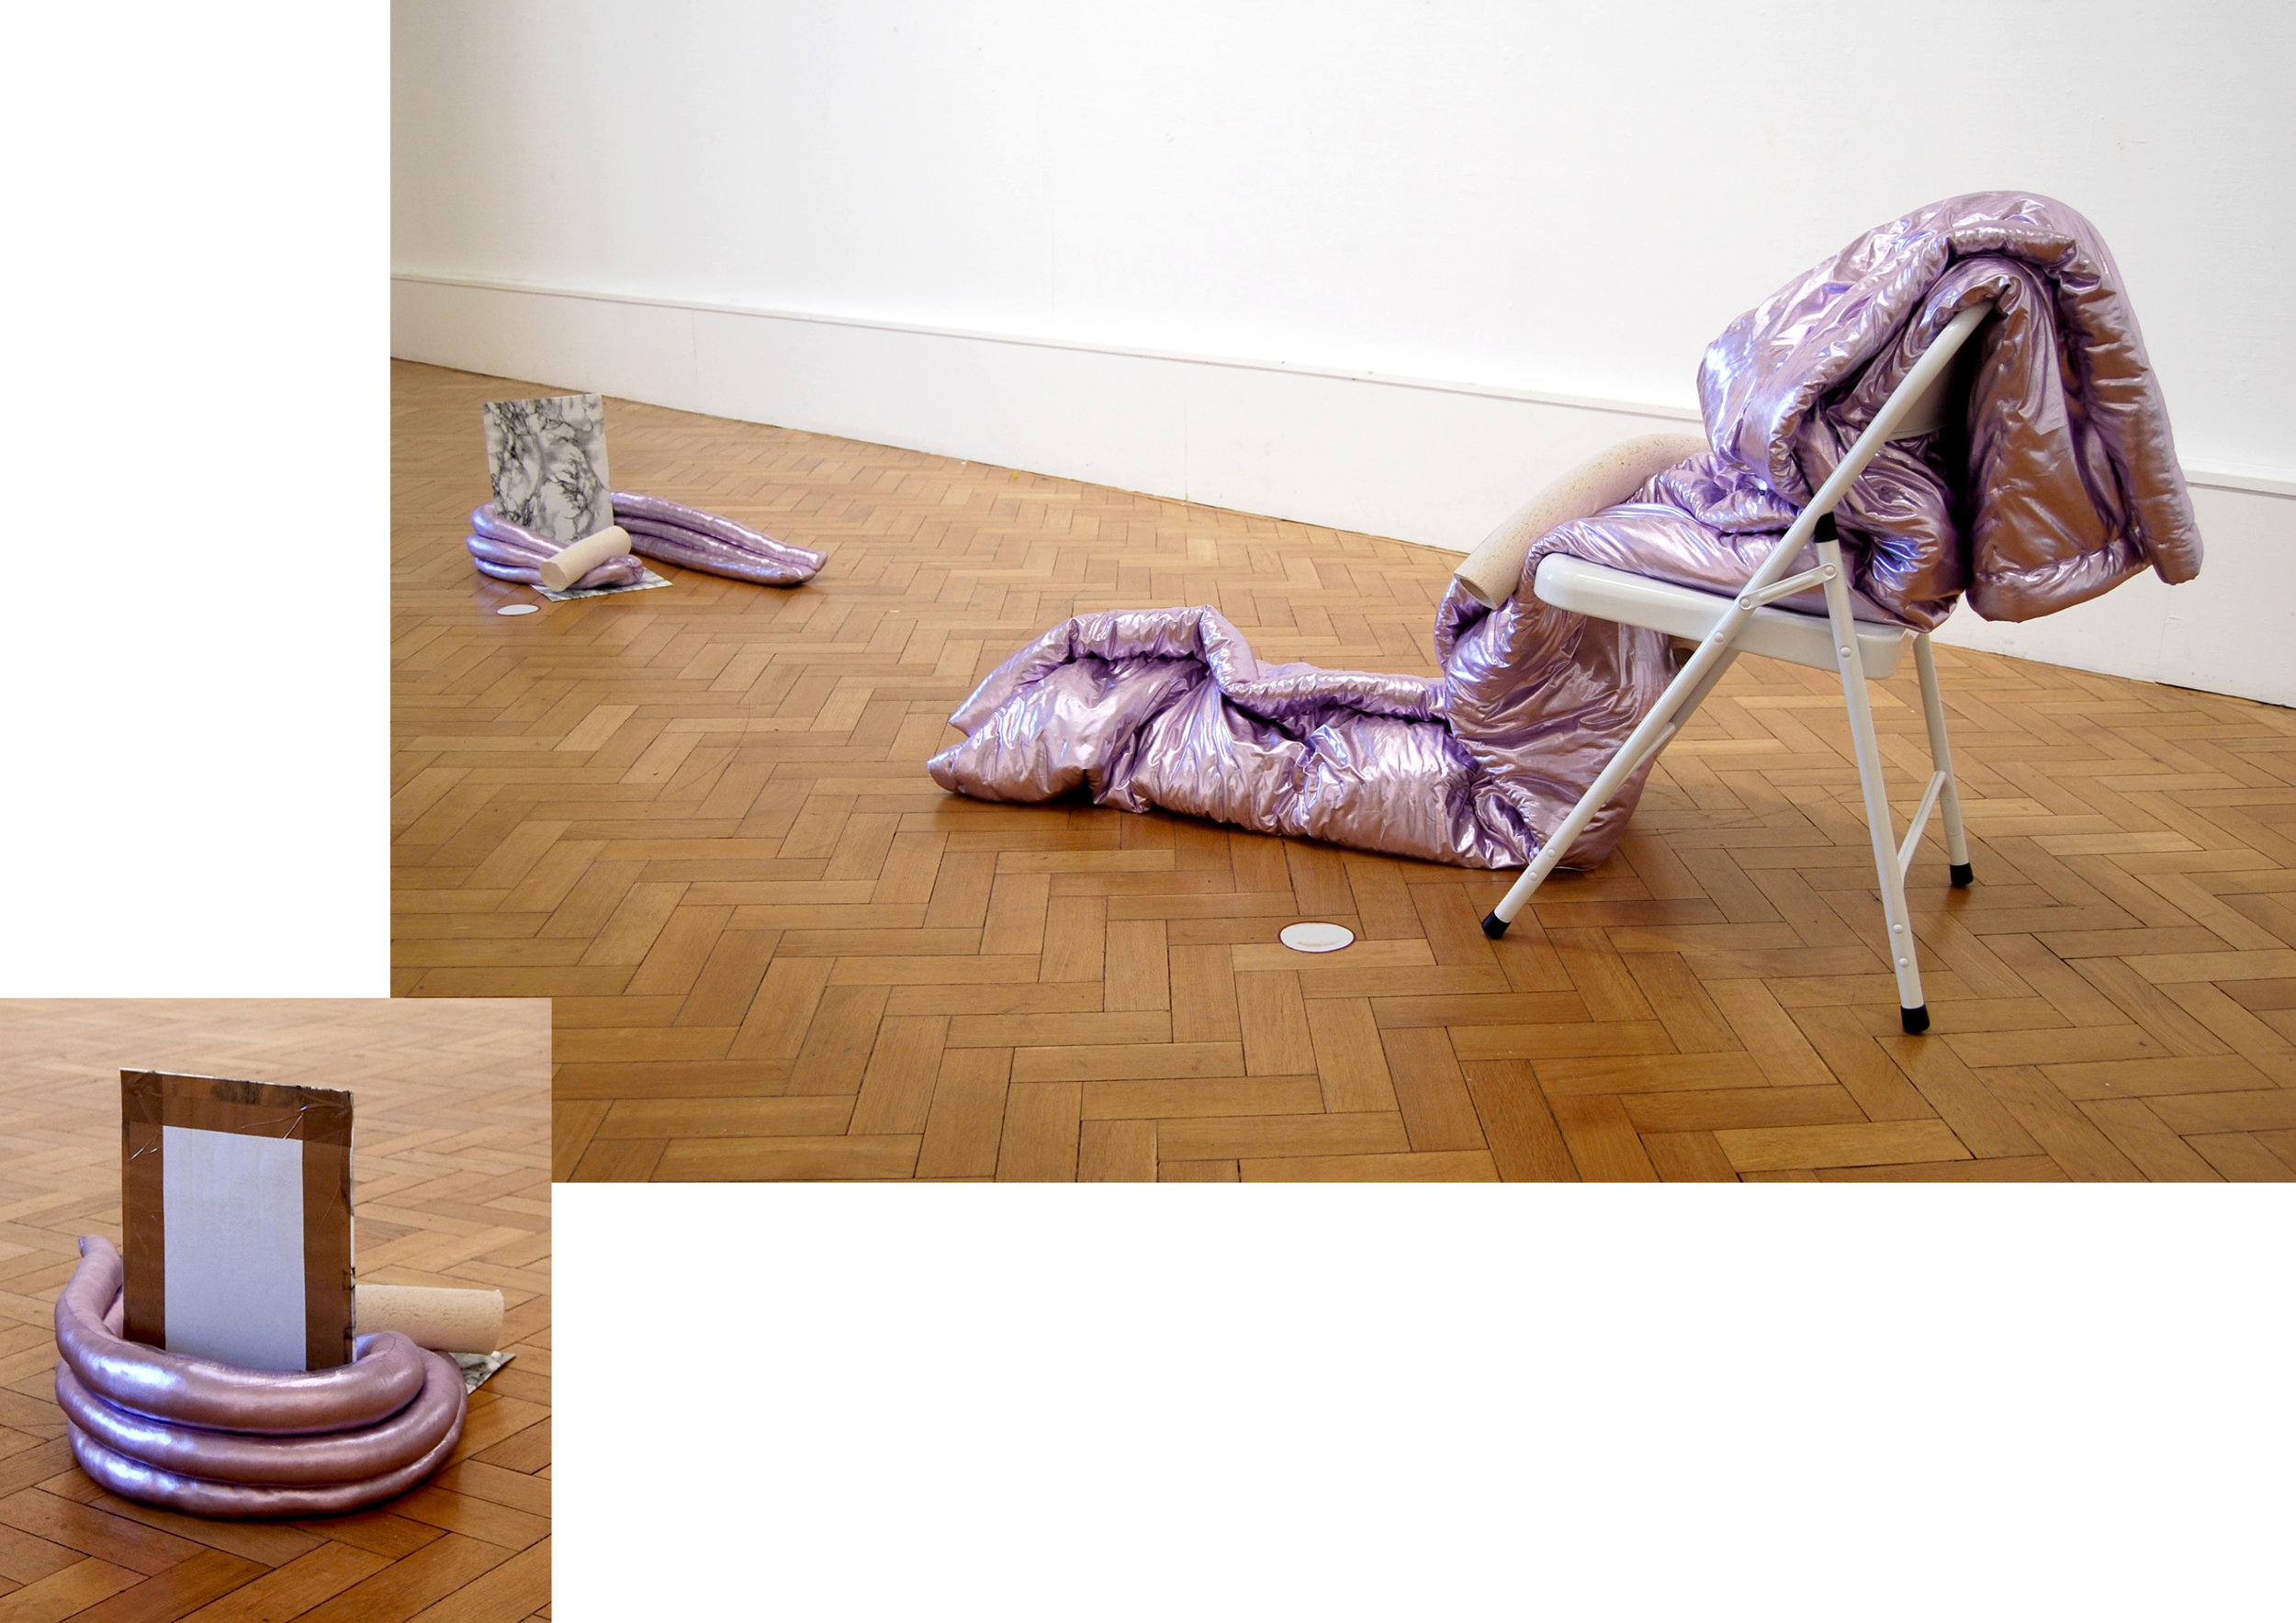 Same, same but different, different, so let's move in together – Brugge / London     - metallic lavender PVC, wadding and extruded clay on white Habitat chair and 'marmi' self-adhesive film, packing tape and card, with vinyl cut-out, 2017